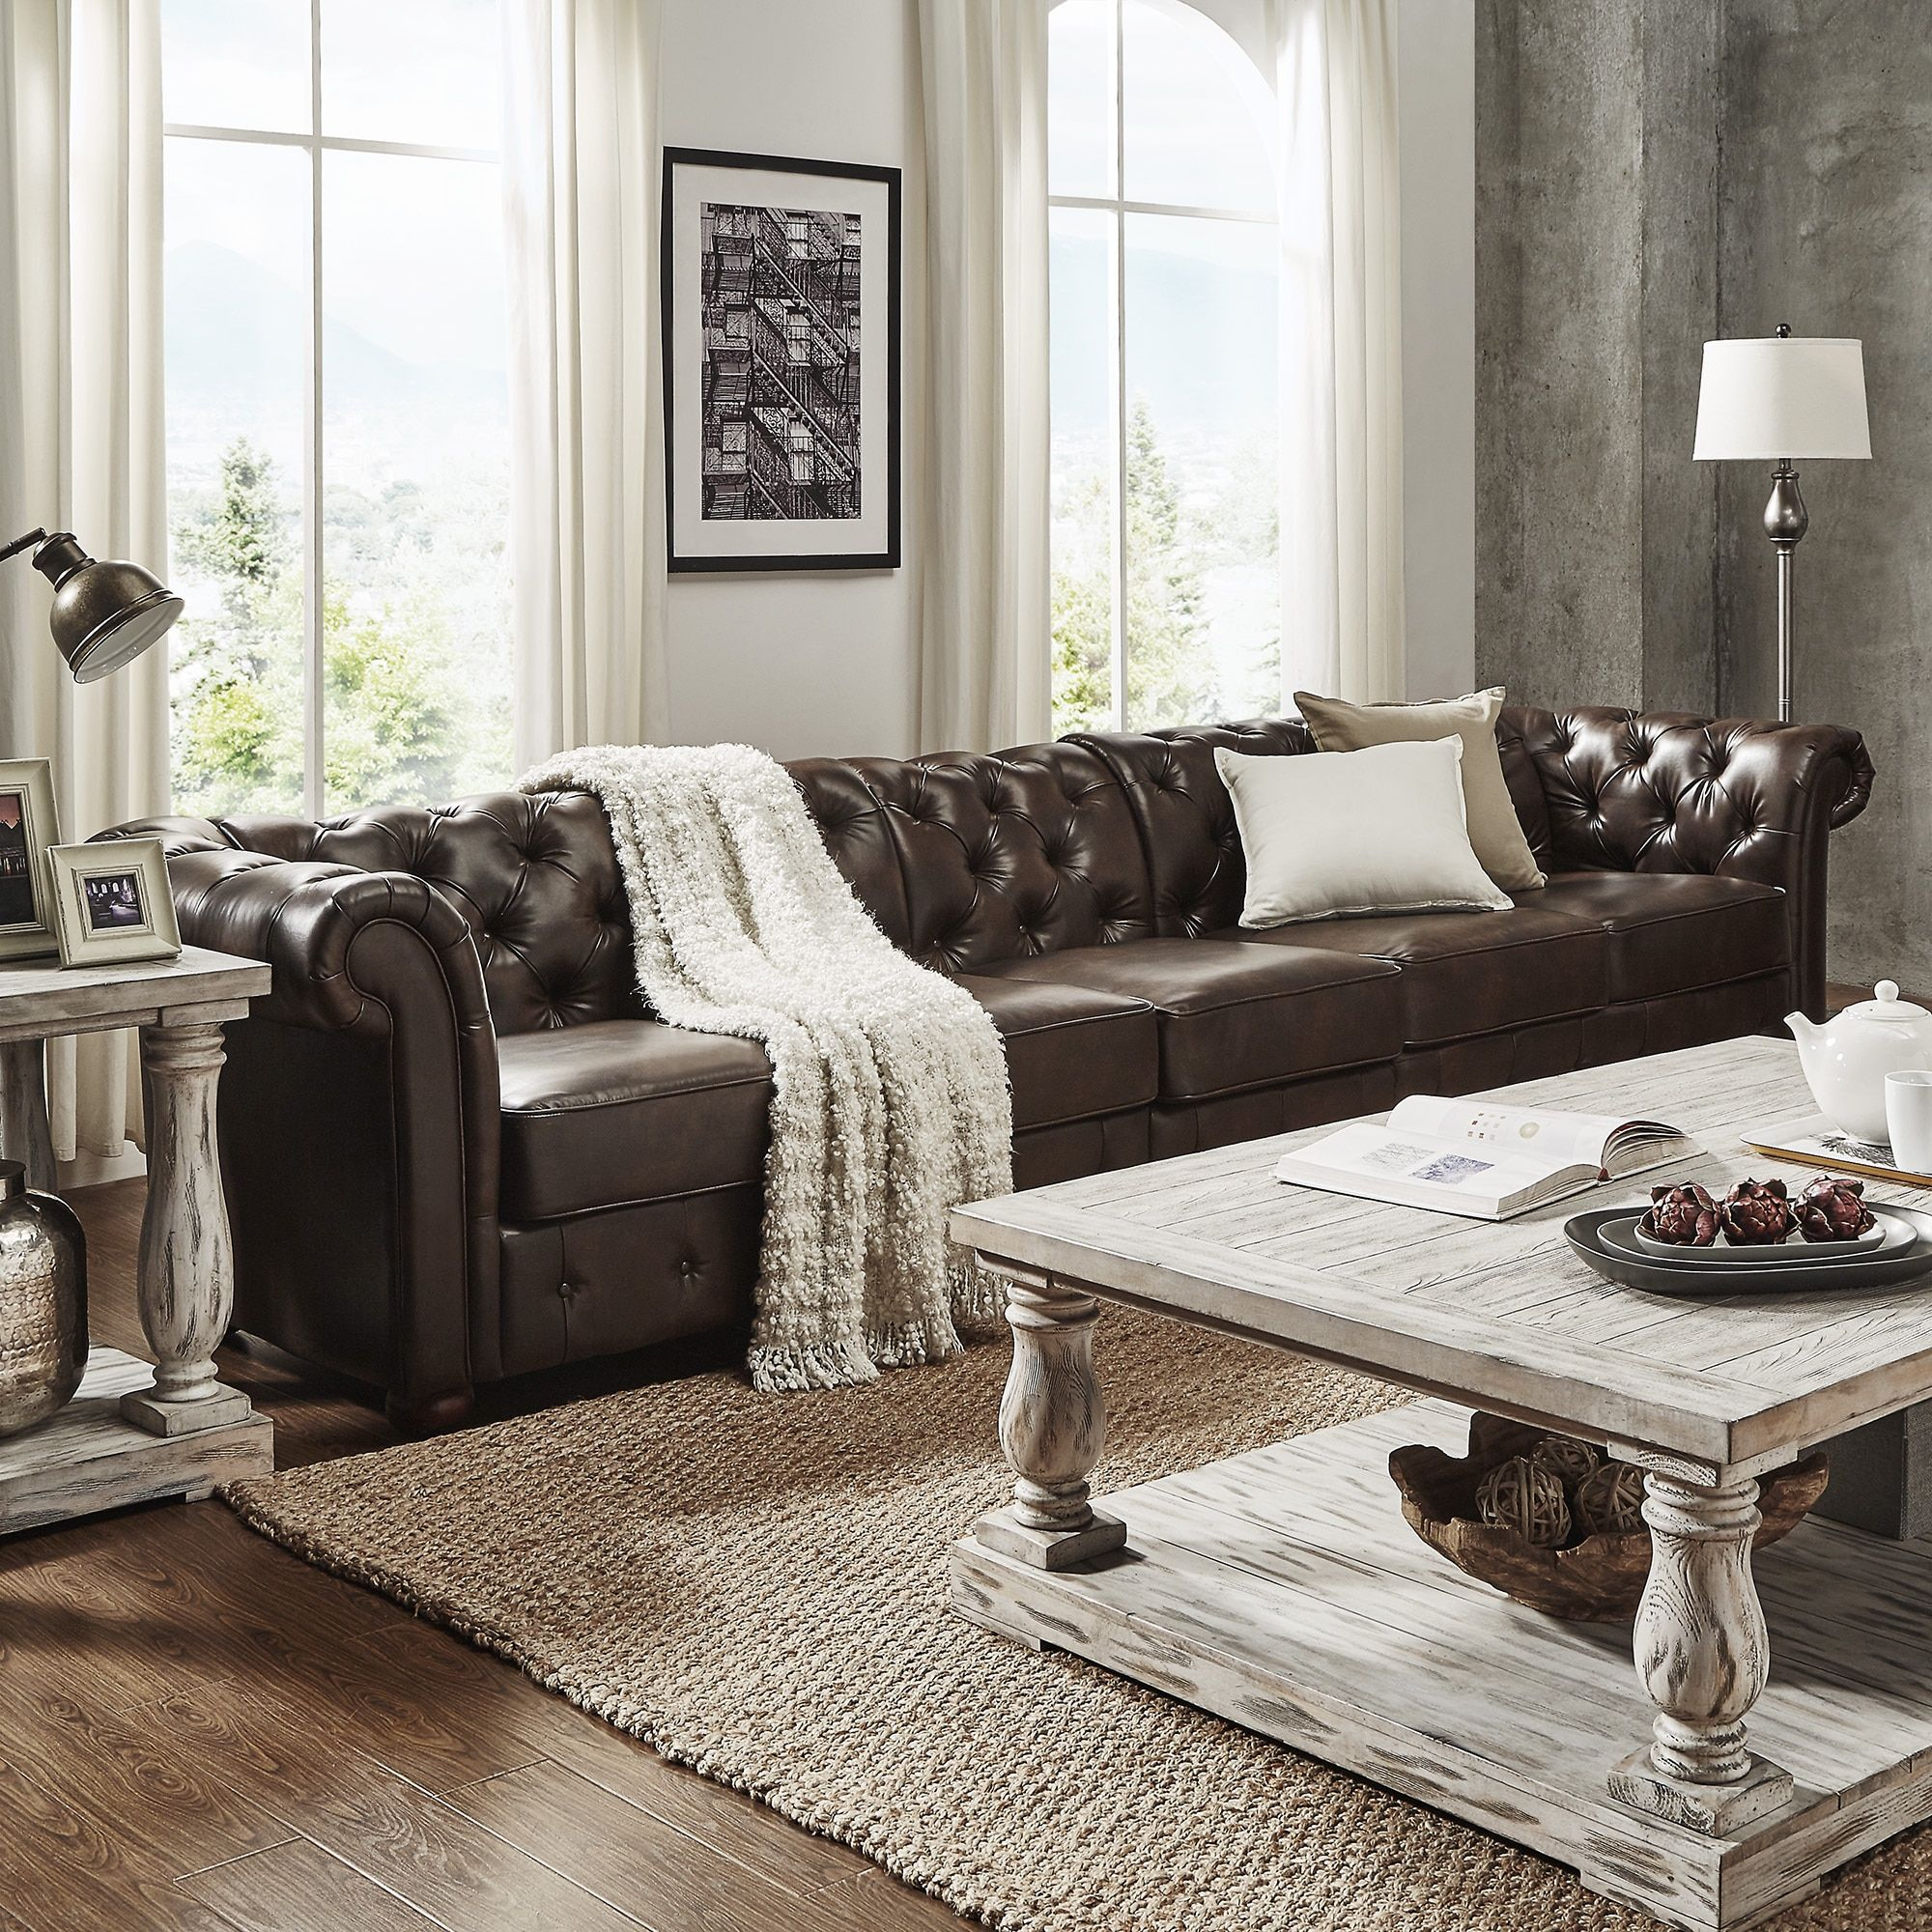 Sofas Overstock Sofa With Perfect Balance Between Comfort: Seat All Your Guests In Comfort And Refinement With This